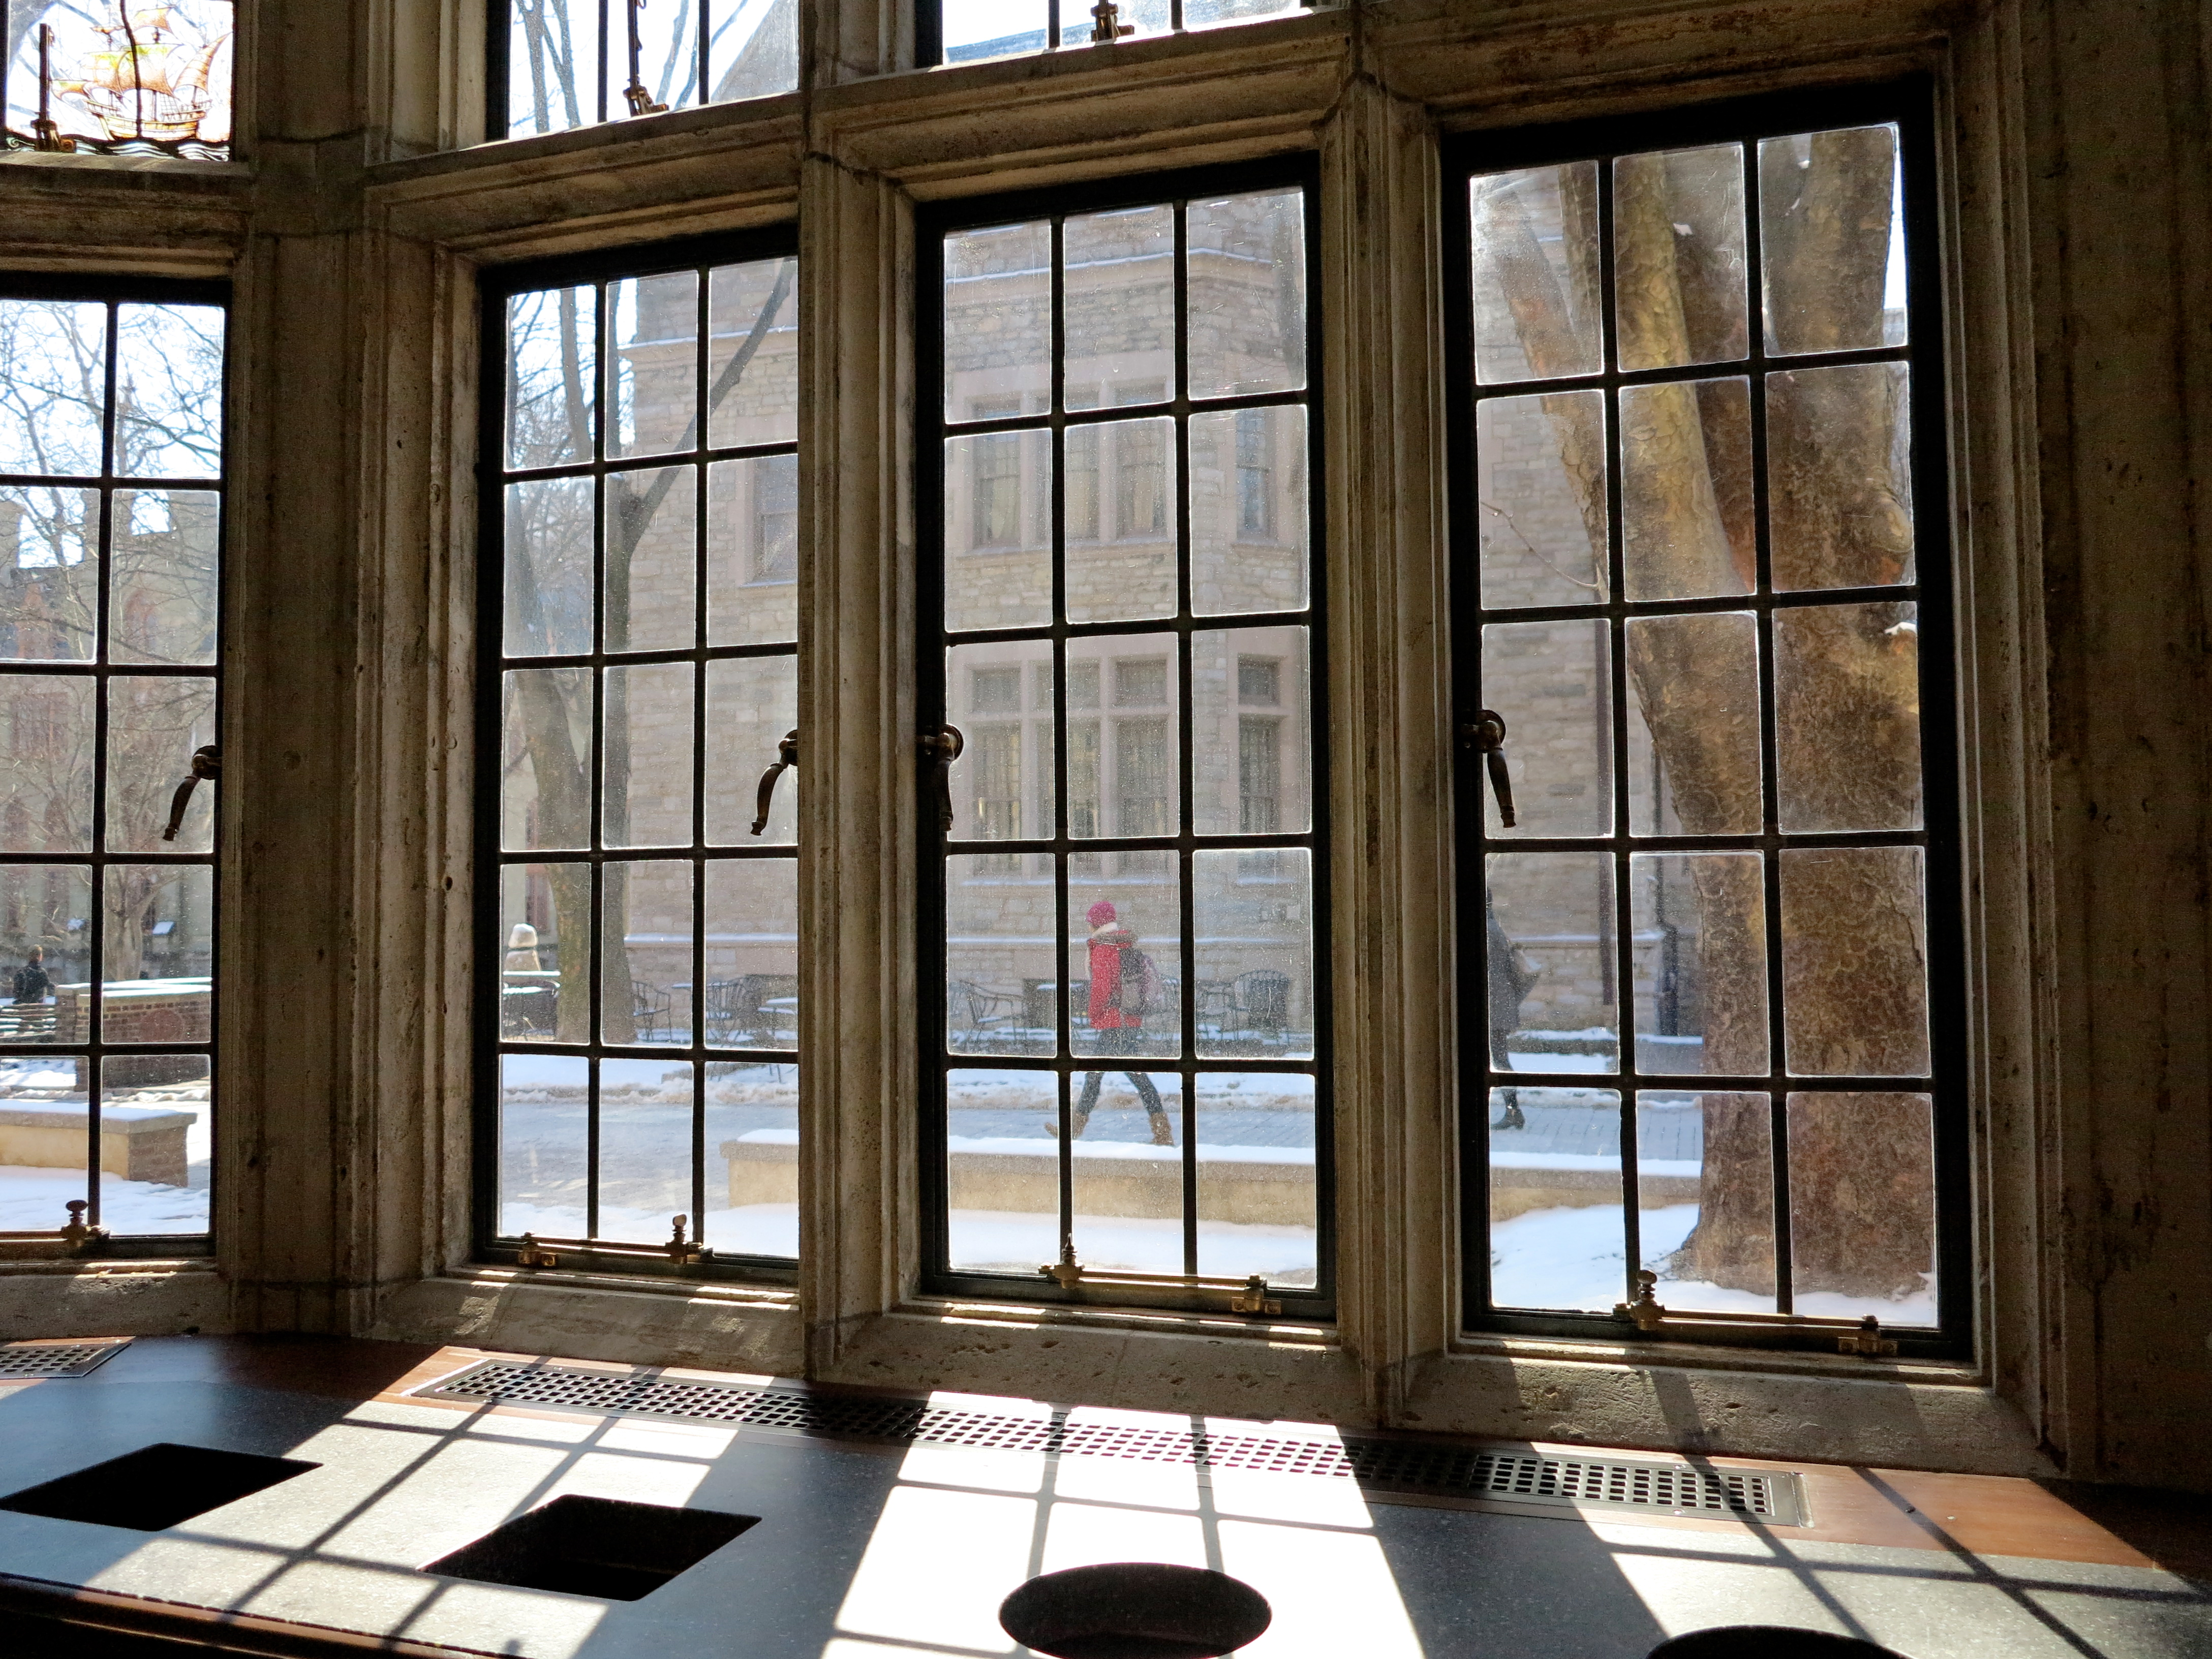 Historic leaded glass windows were restored and let light stream in.